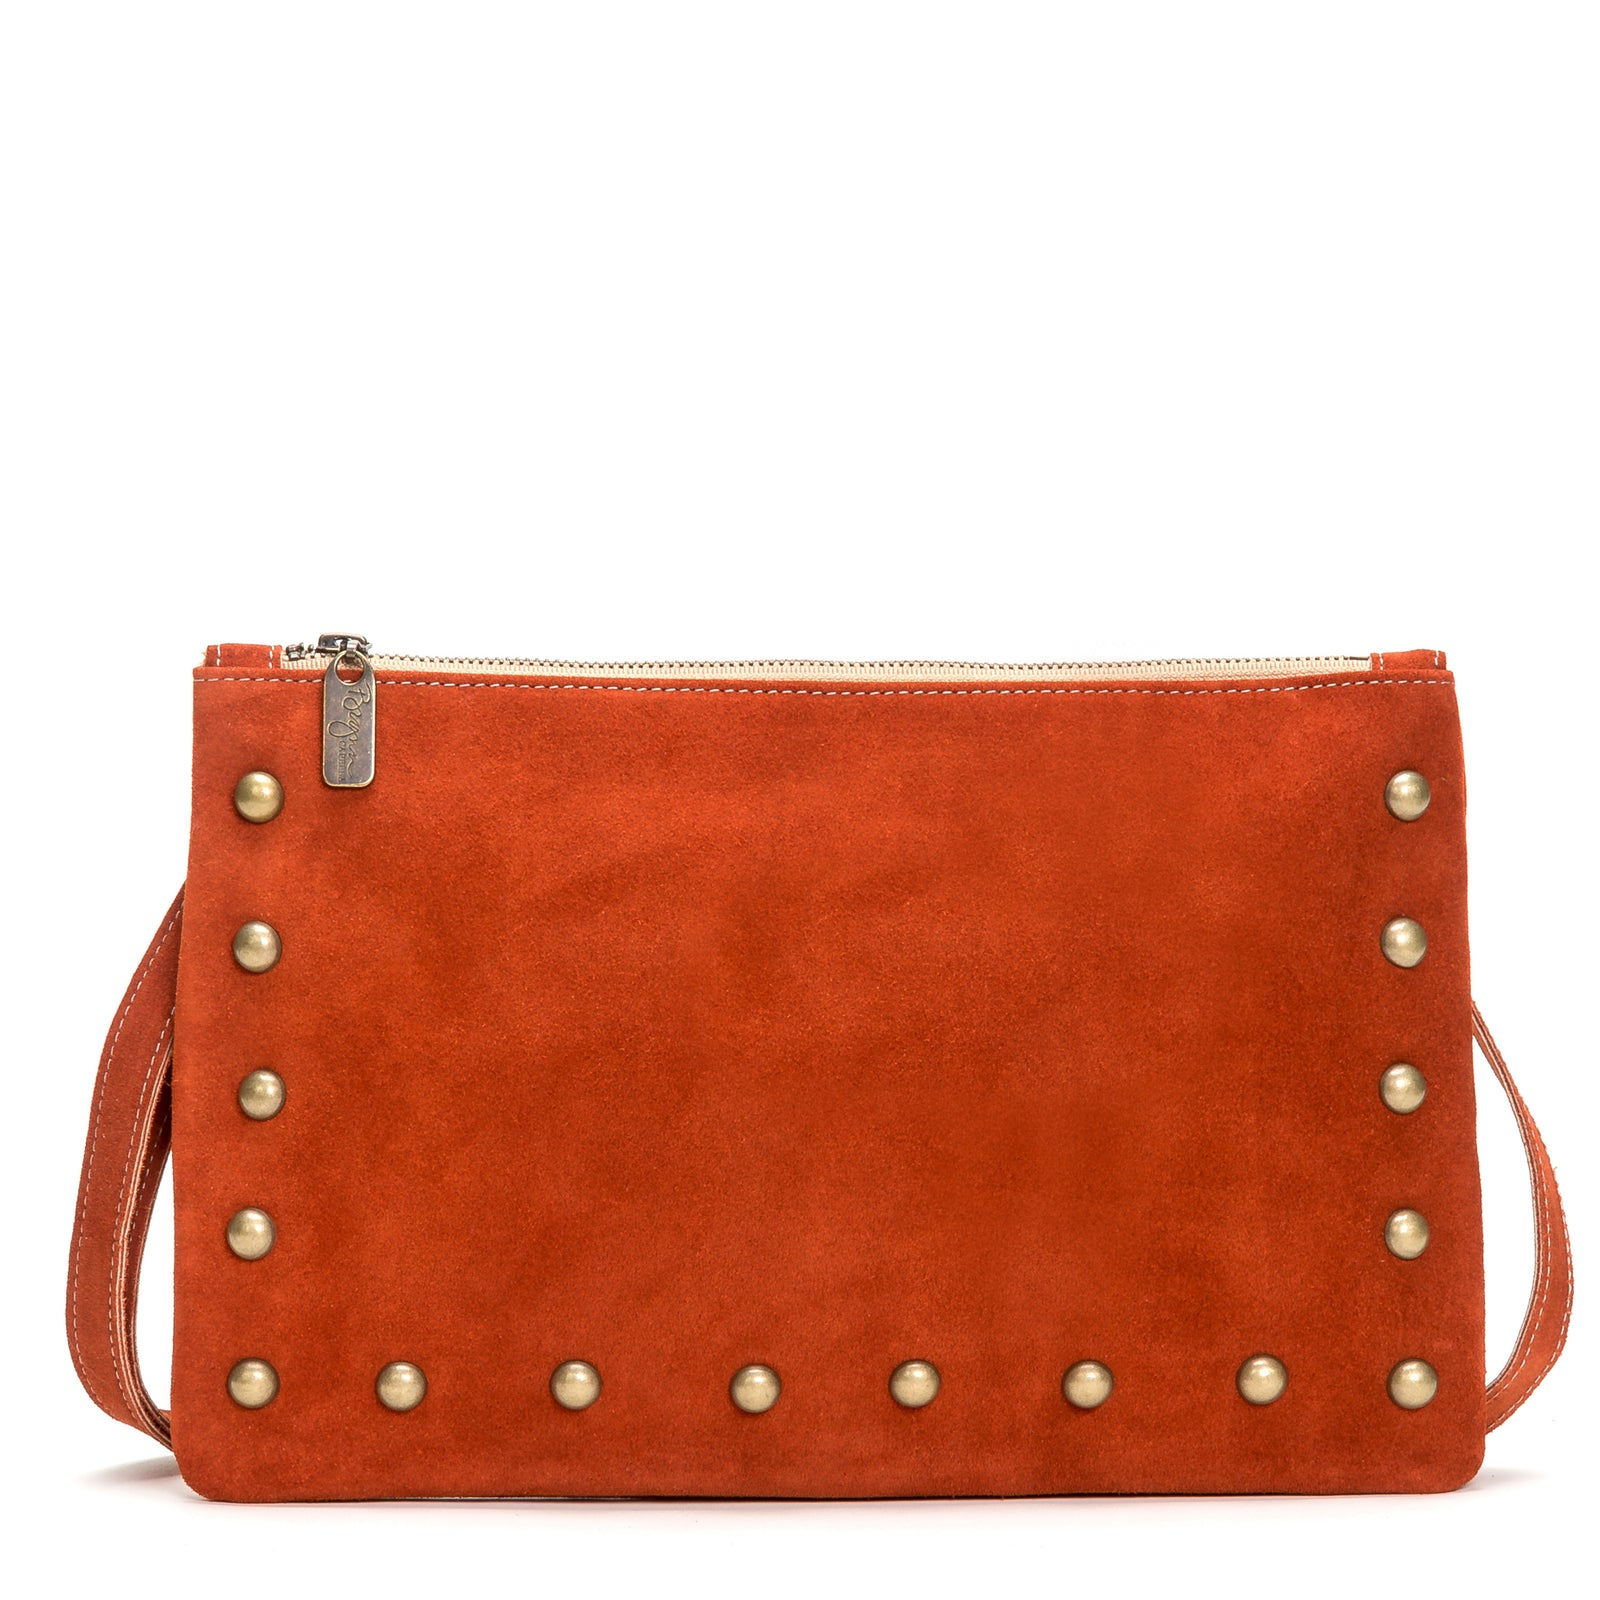 Nikki Clutch/Crossbody - Cinnamon - Brynn Capella, Small Crossbody